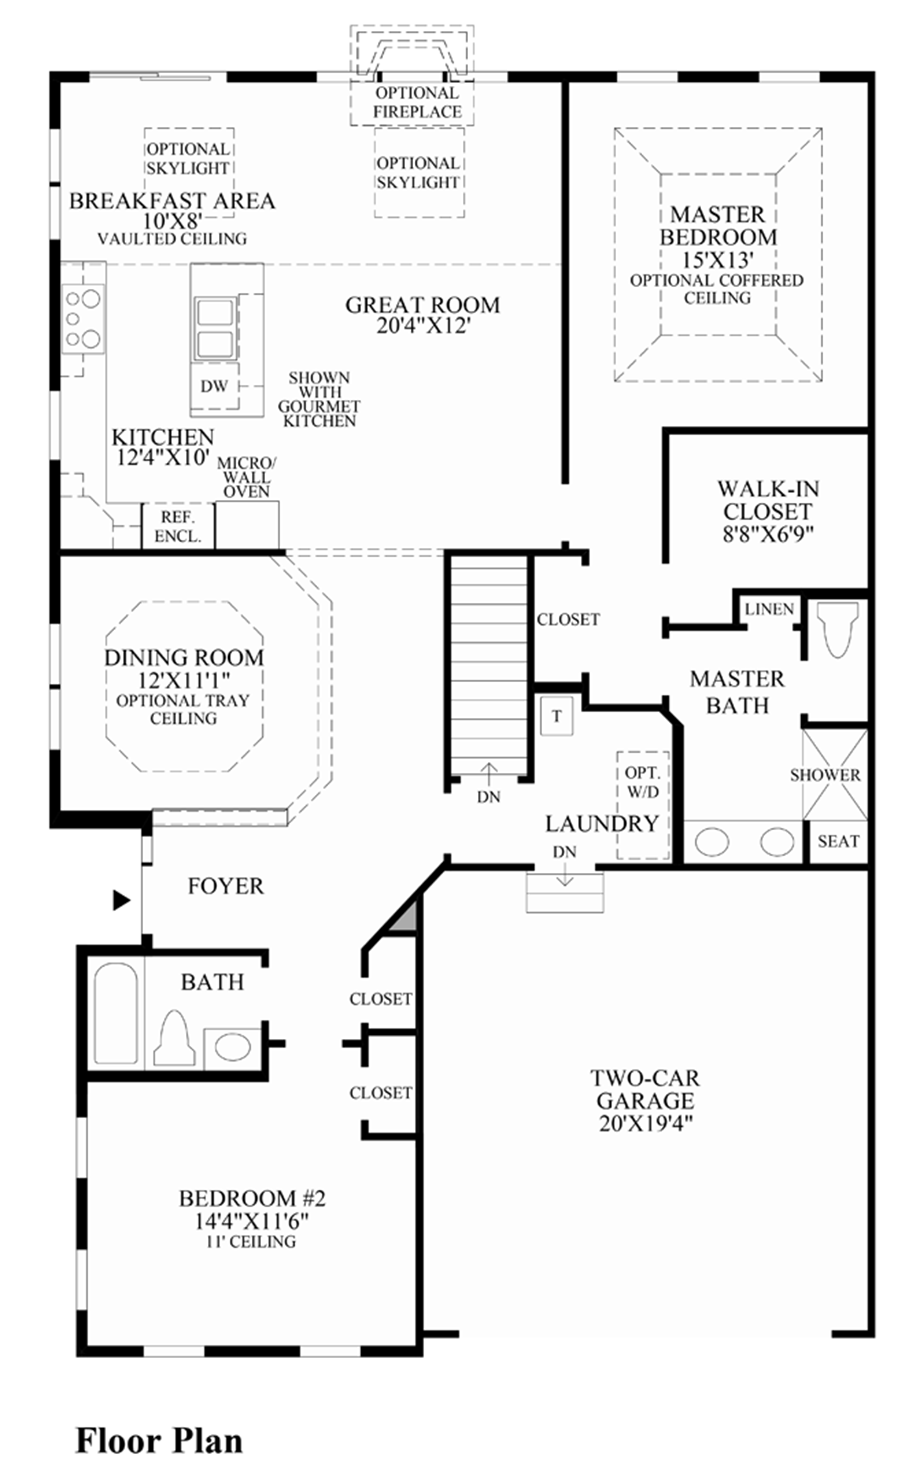 Design your own kitchen floor plan design your own for Design your own restaurant floor plan